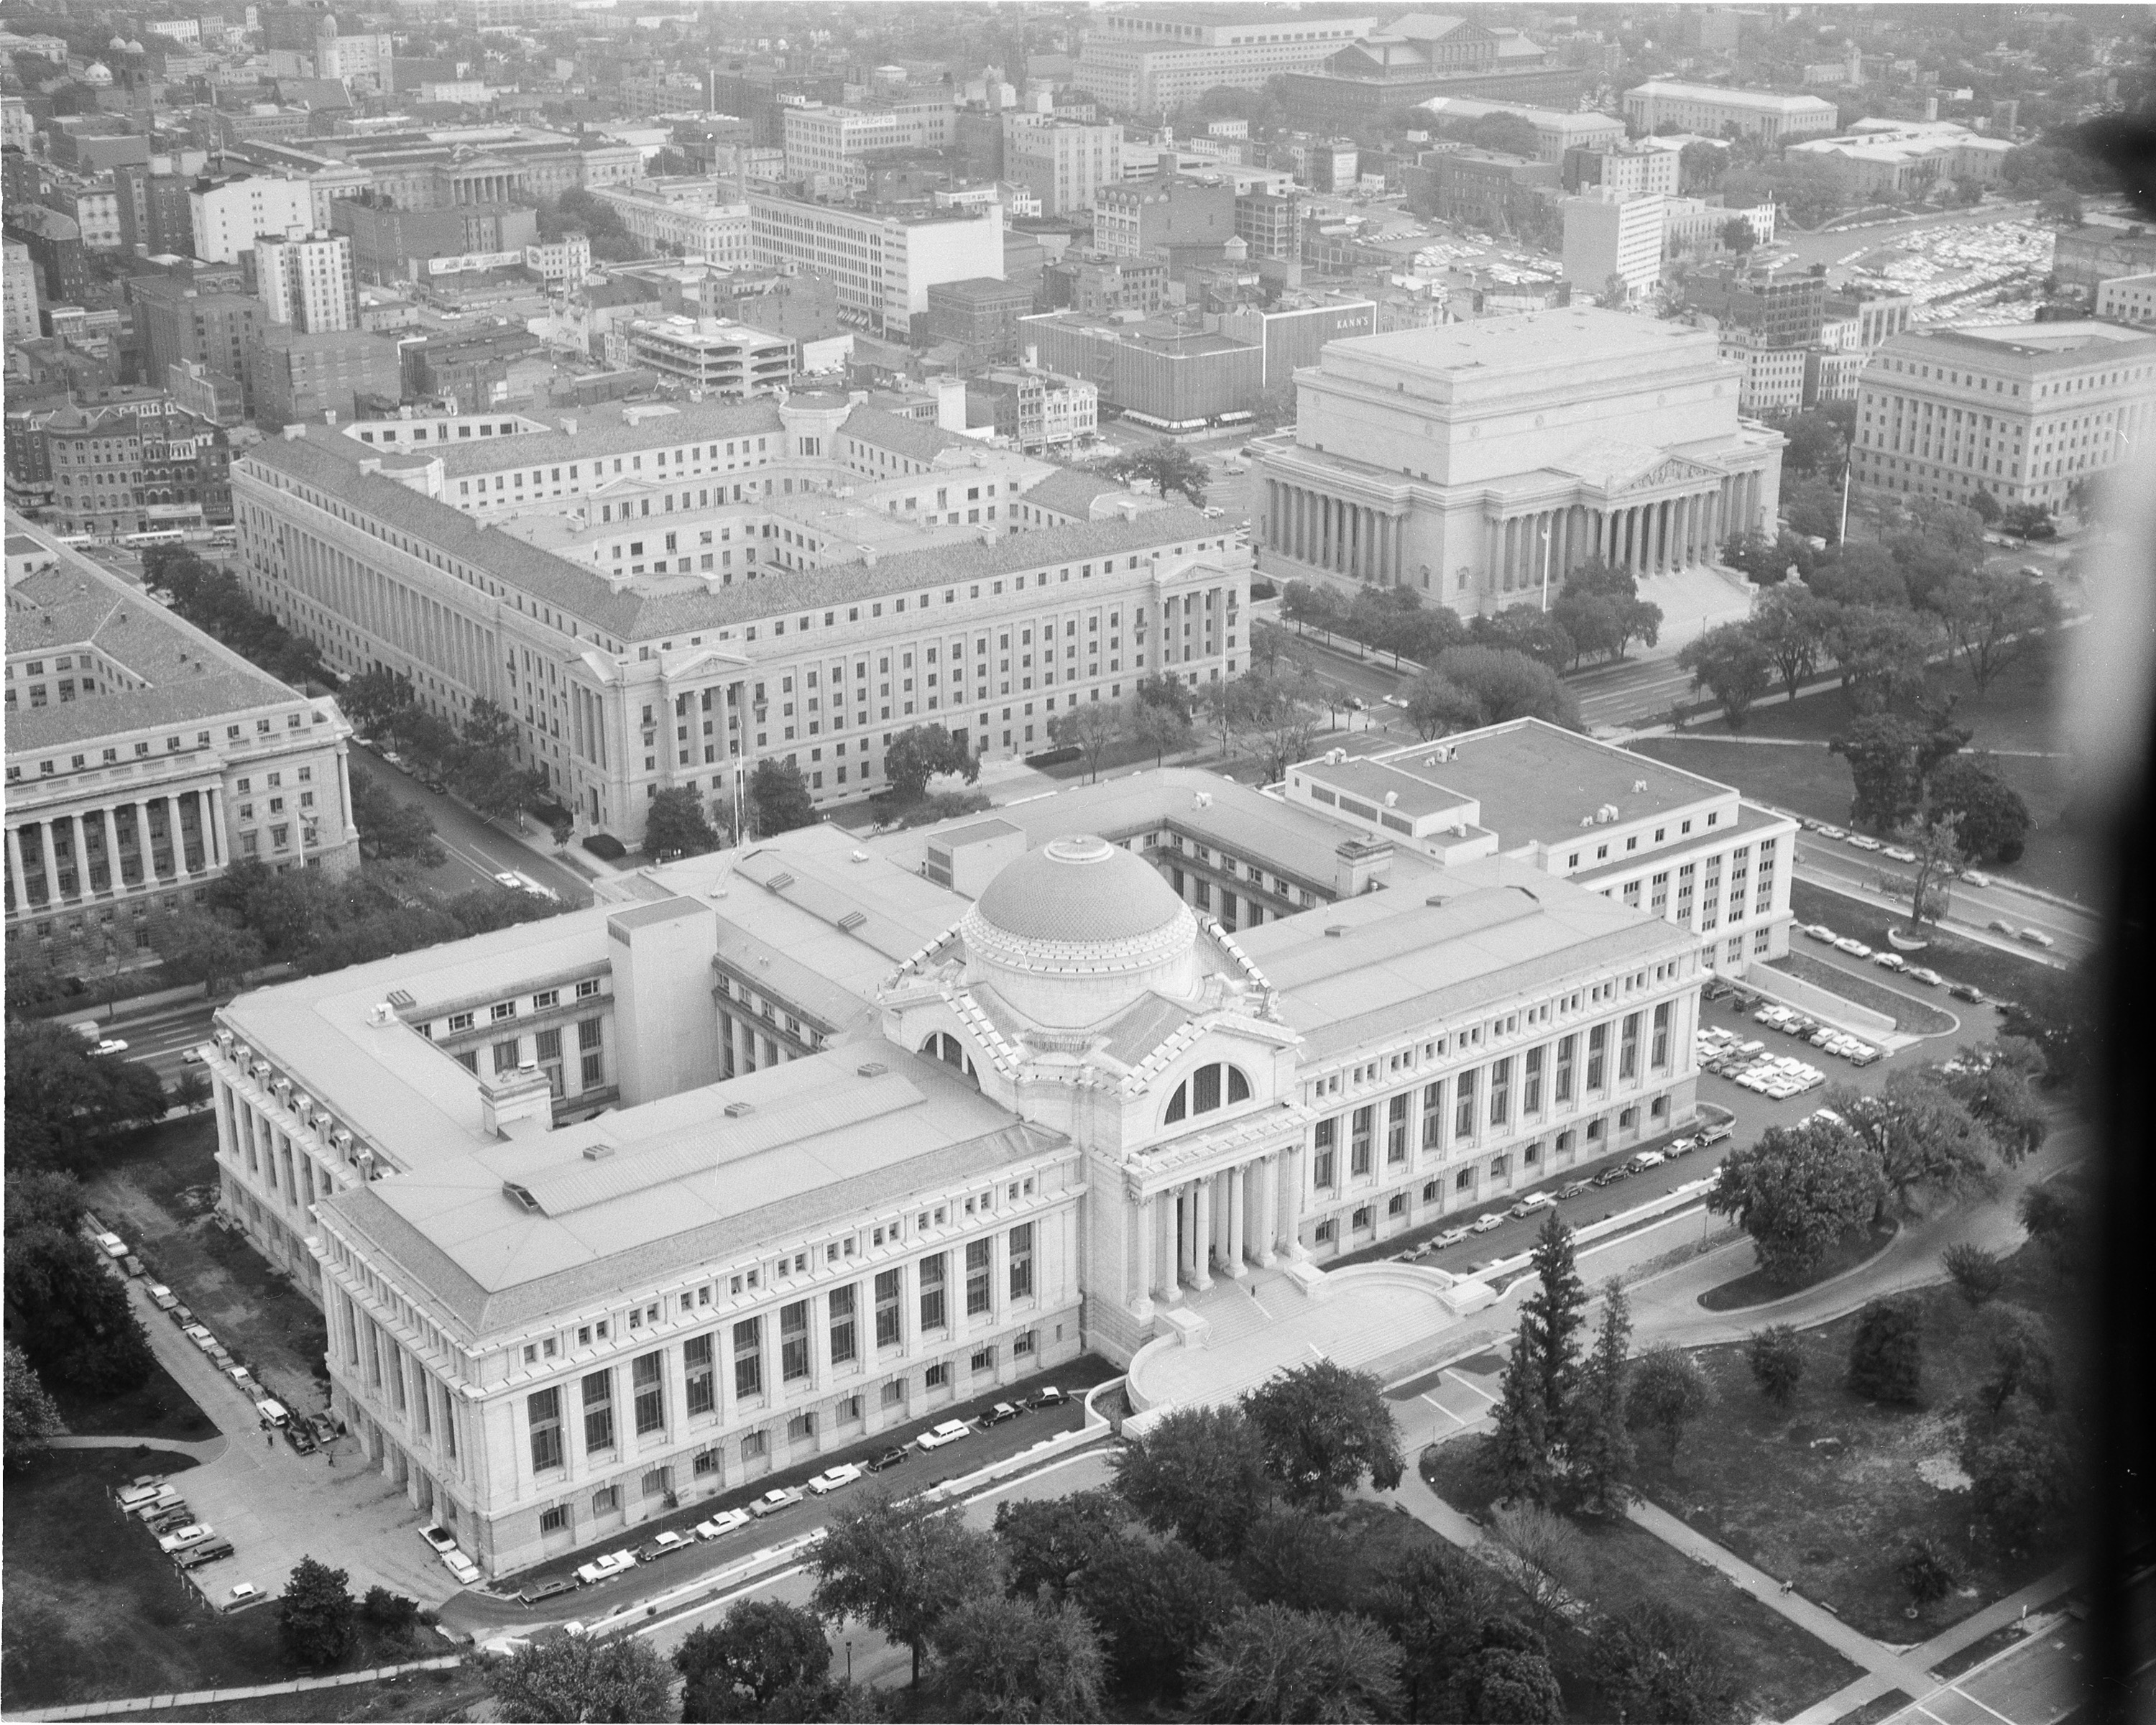 Aerial view of the National Museum of Natural History